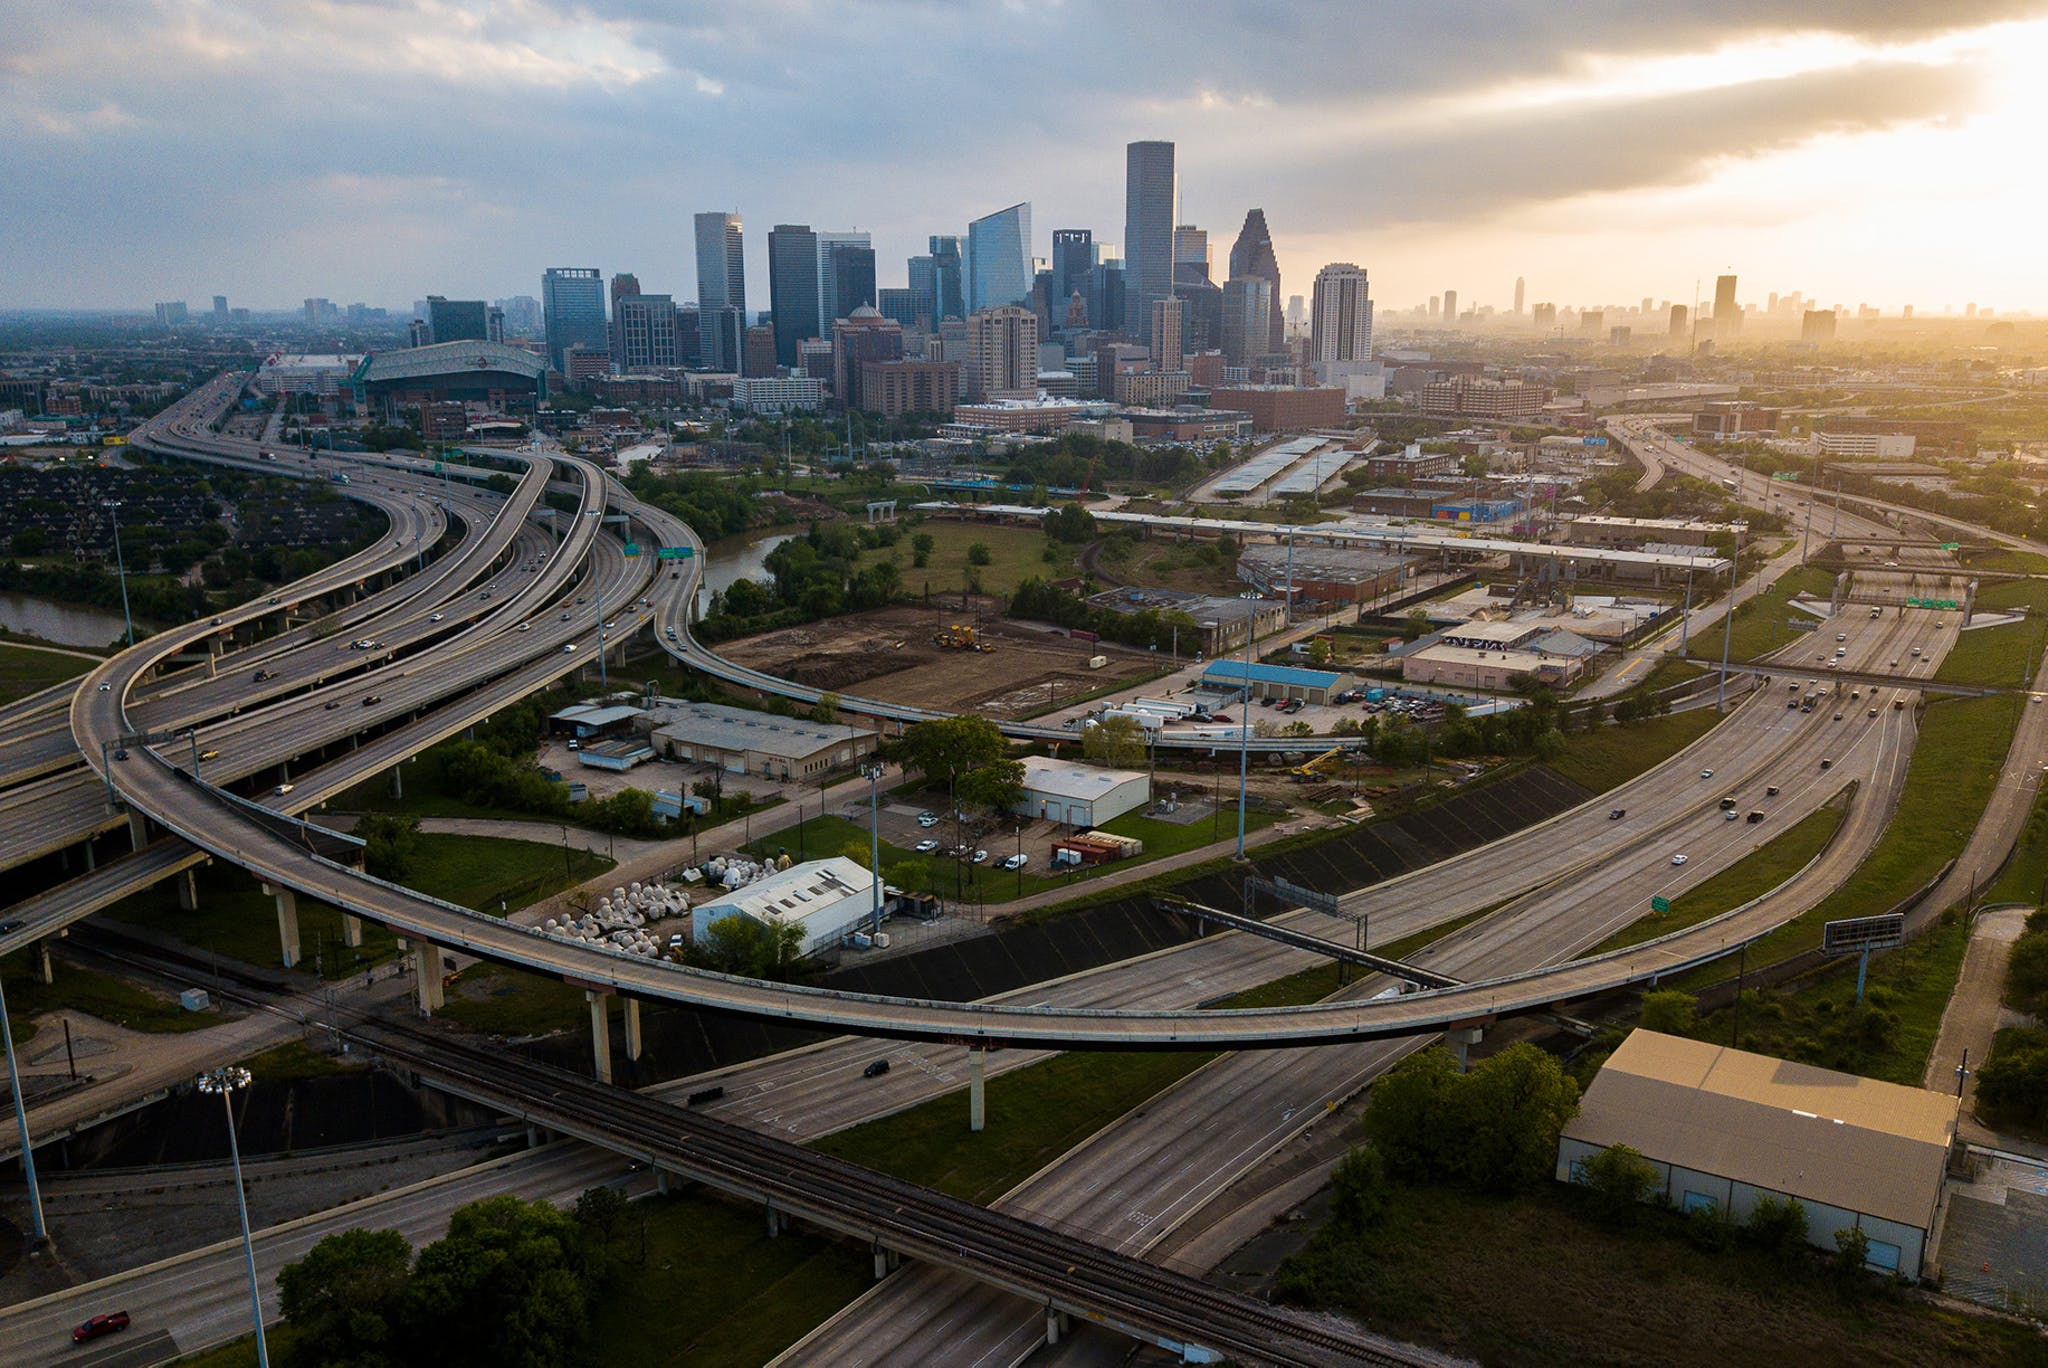 After Houston and Harris County officials issued a stay-at-home order, the typically traffic-choked downtown high-ways were mostly empty.